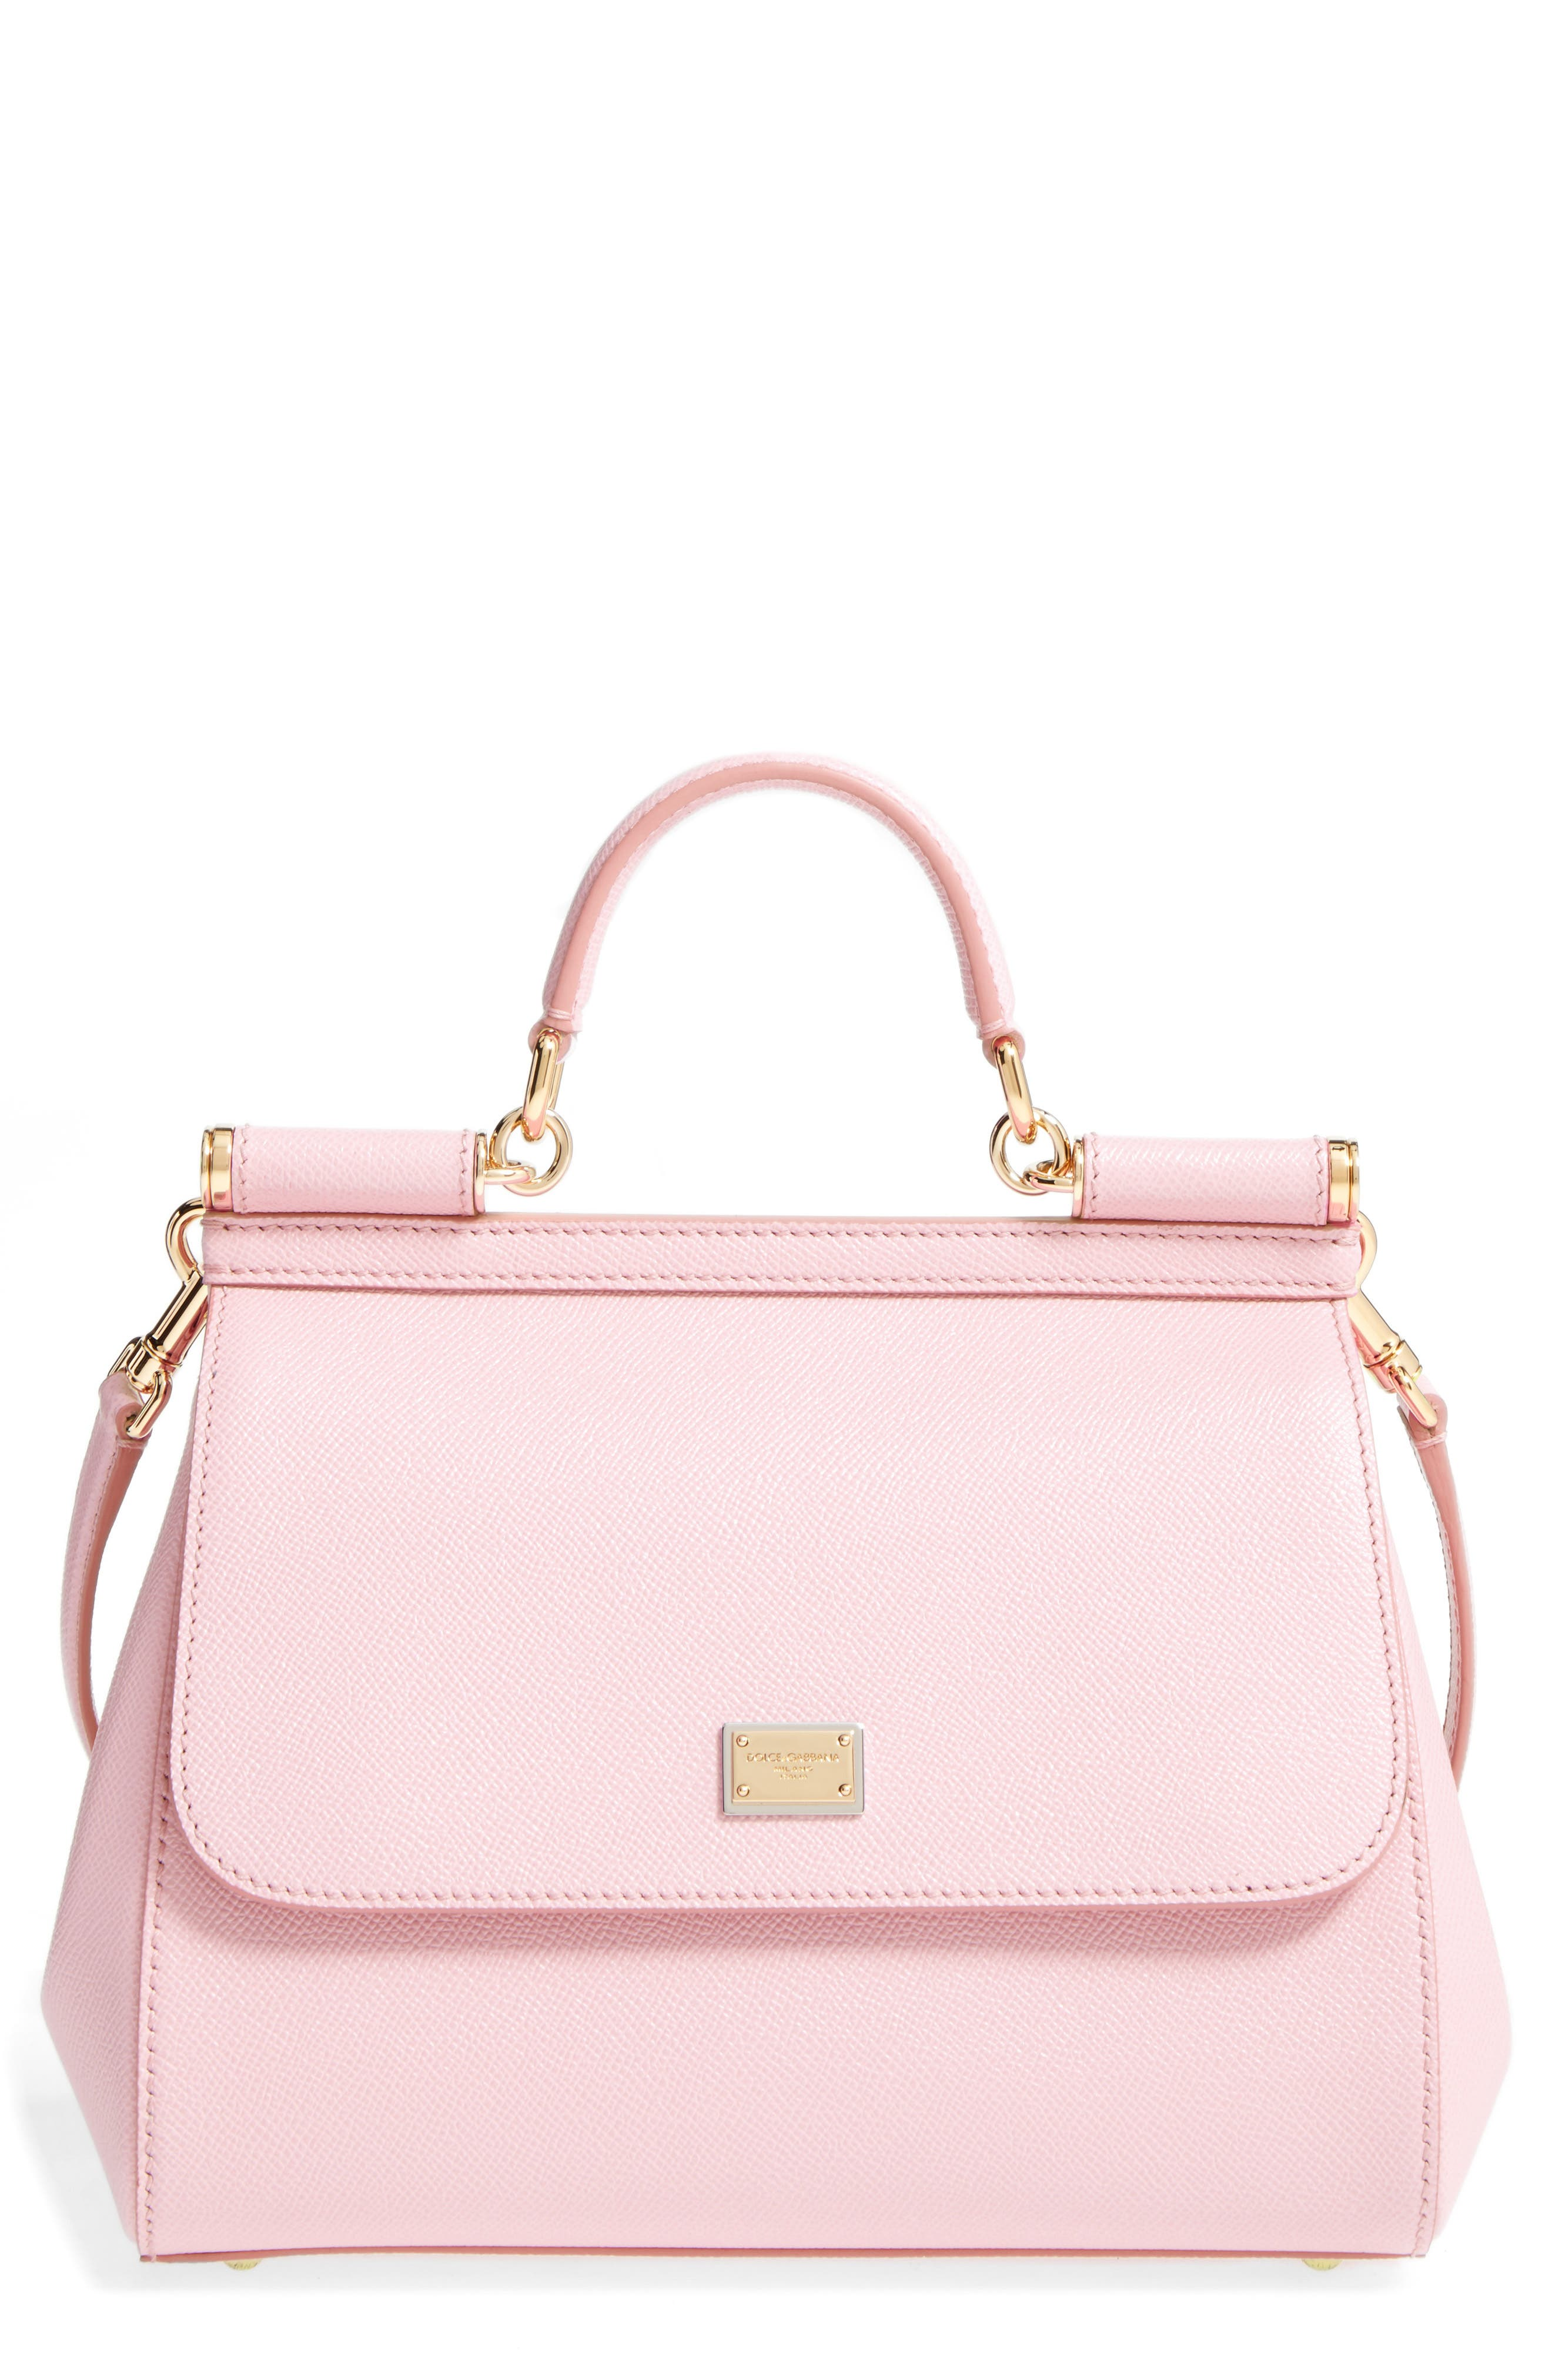 'Small Miss Sicily' Leather Satchel,                         Main,                         color, ROSA CARNE DUO